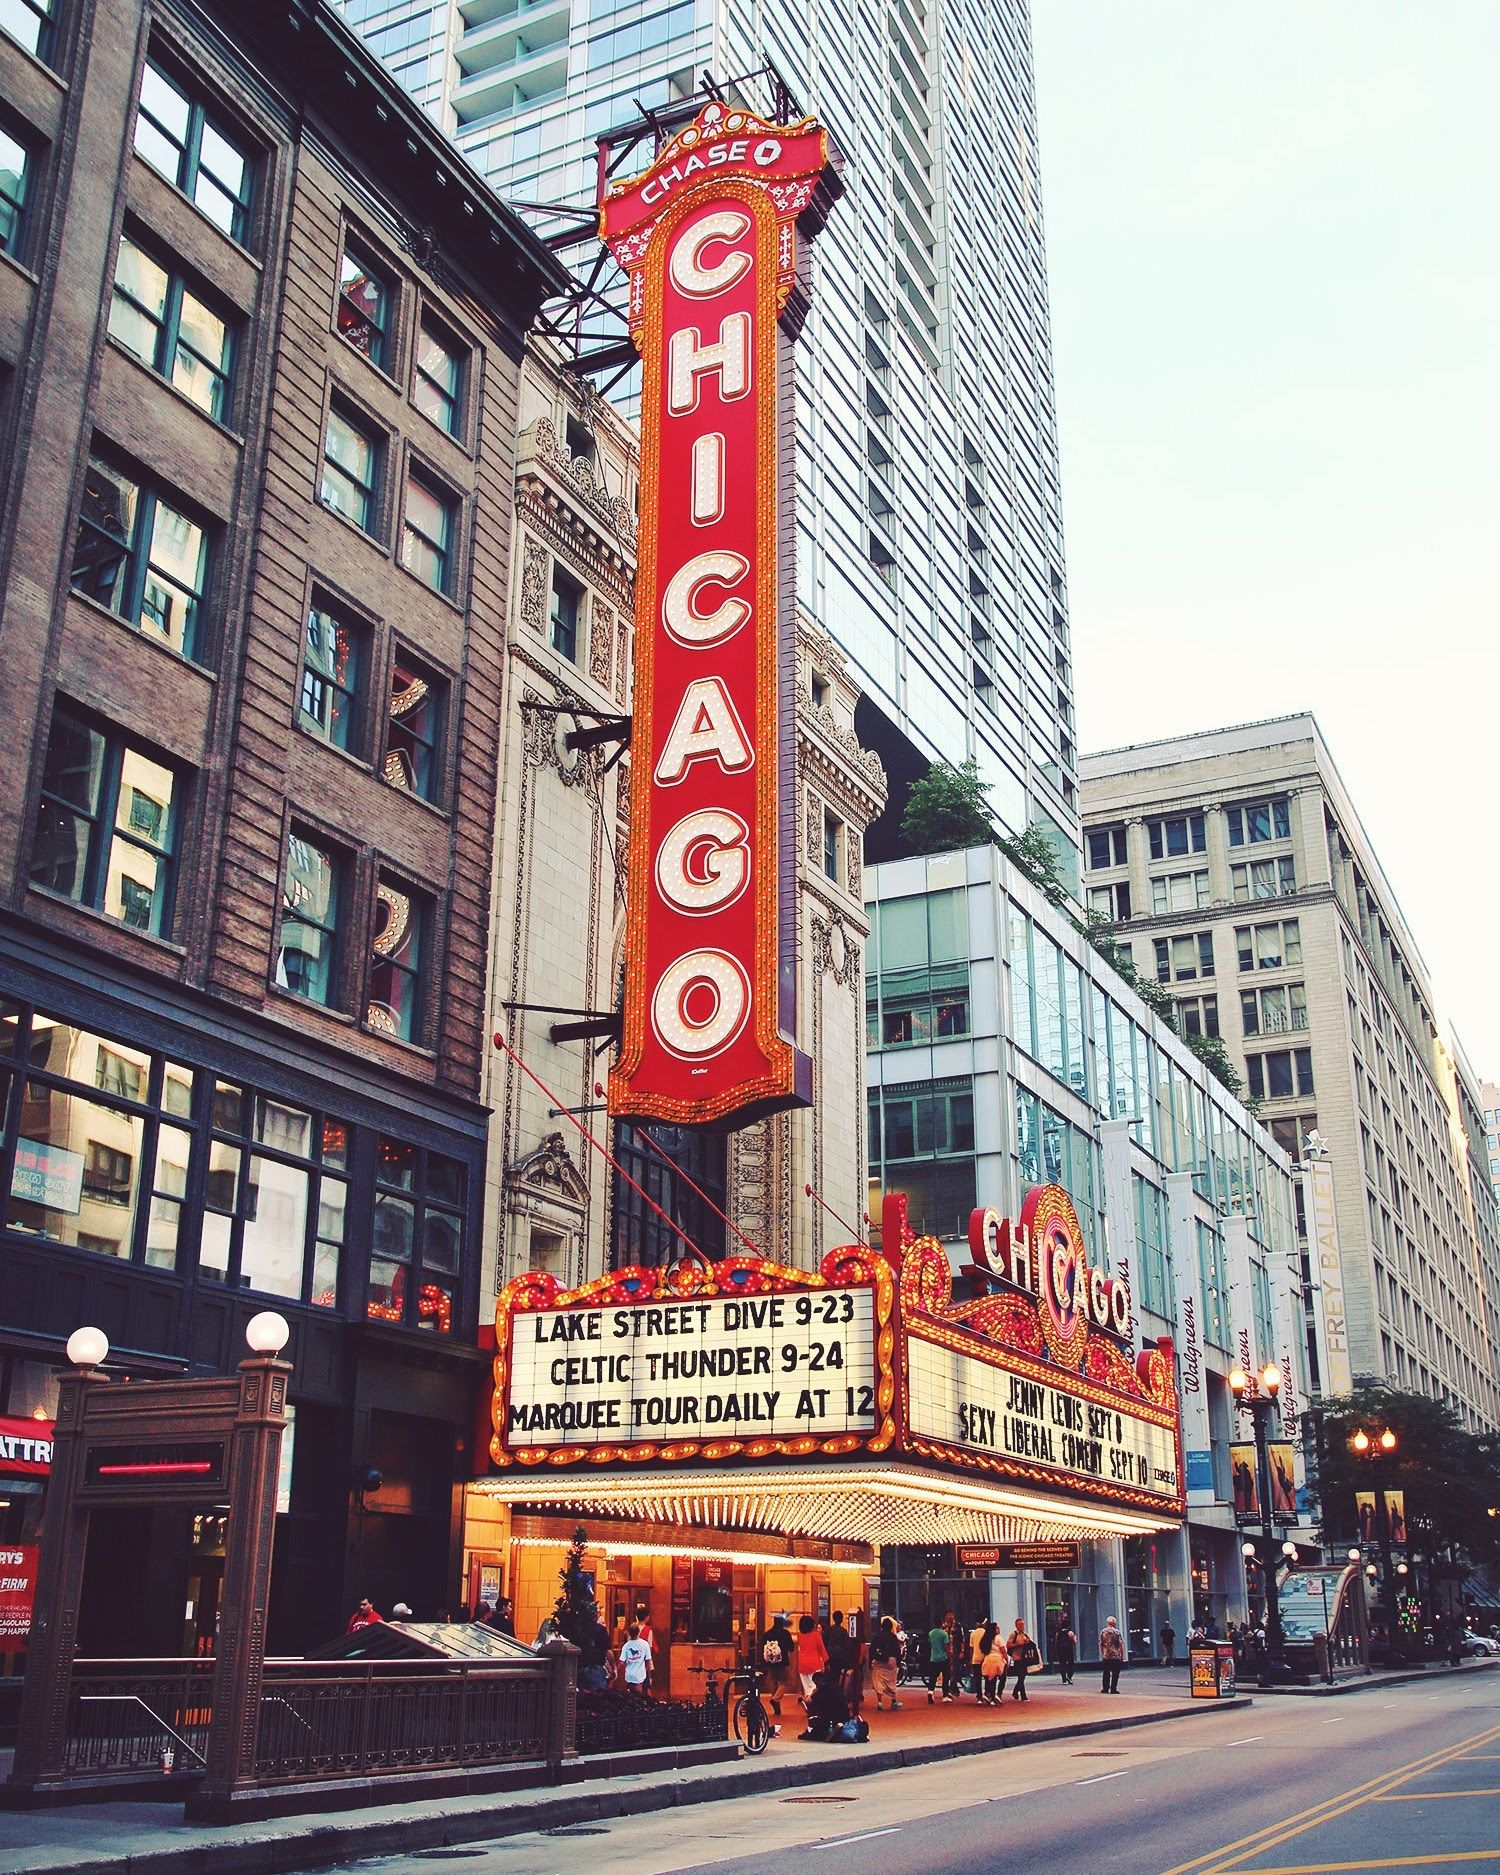 Chicago Theatre - no shows during our visit, but possibly a tour?